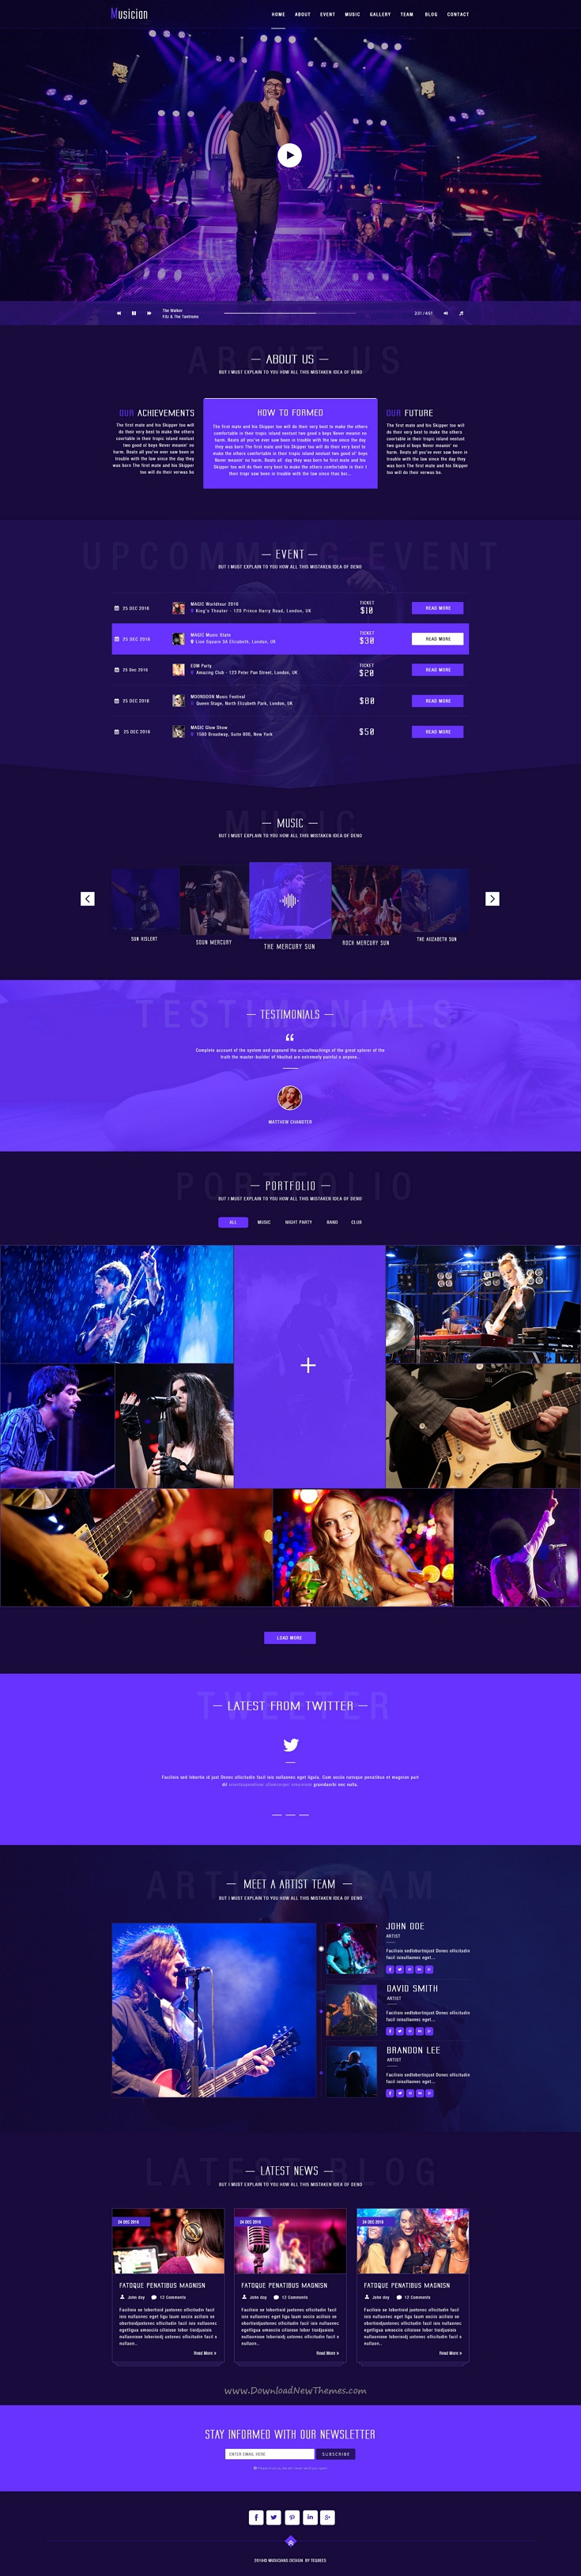 Musician - Artist & Band PSD Template | Psd templates and Template